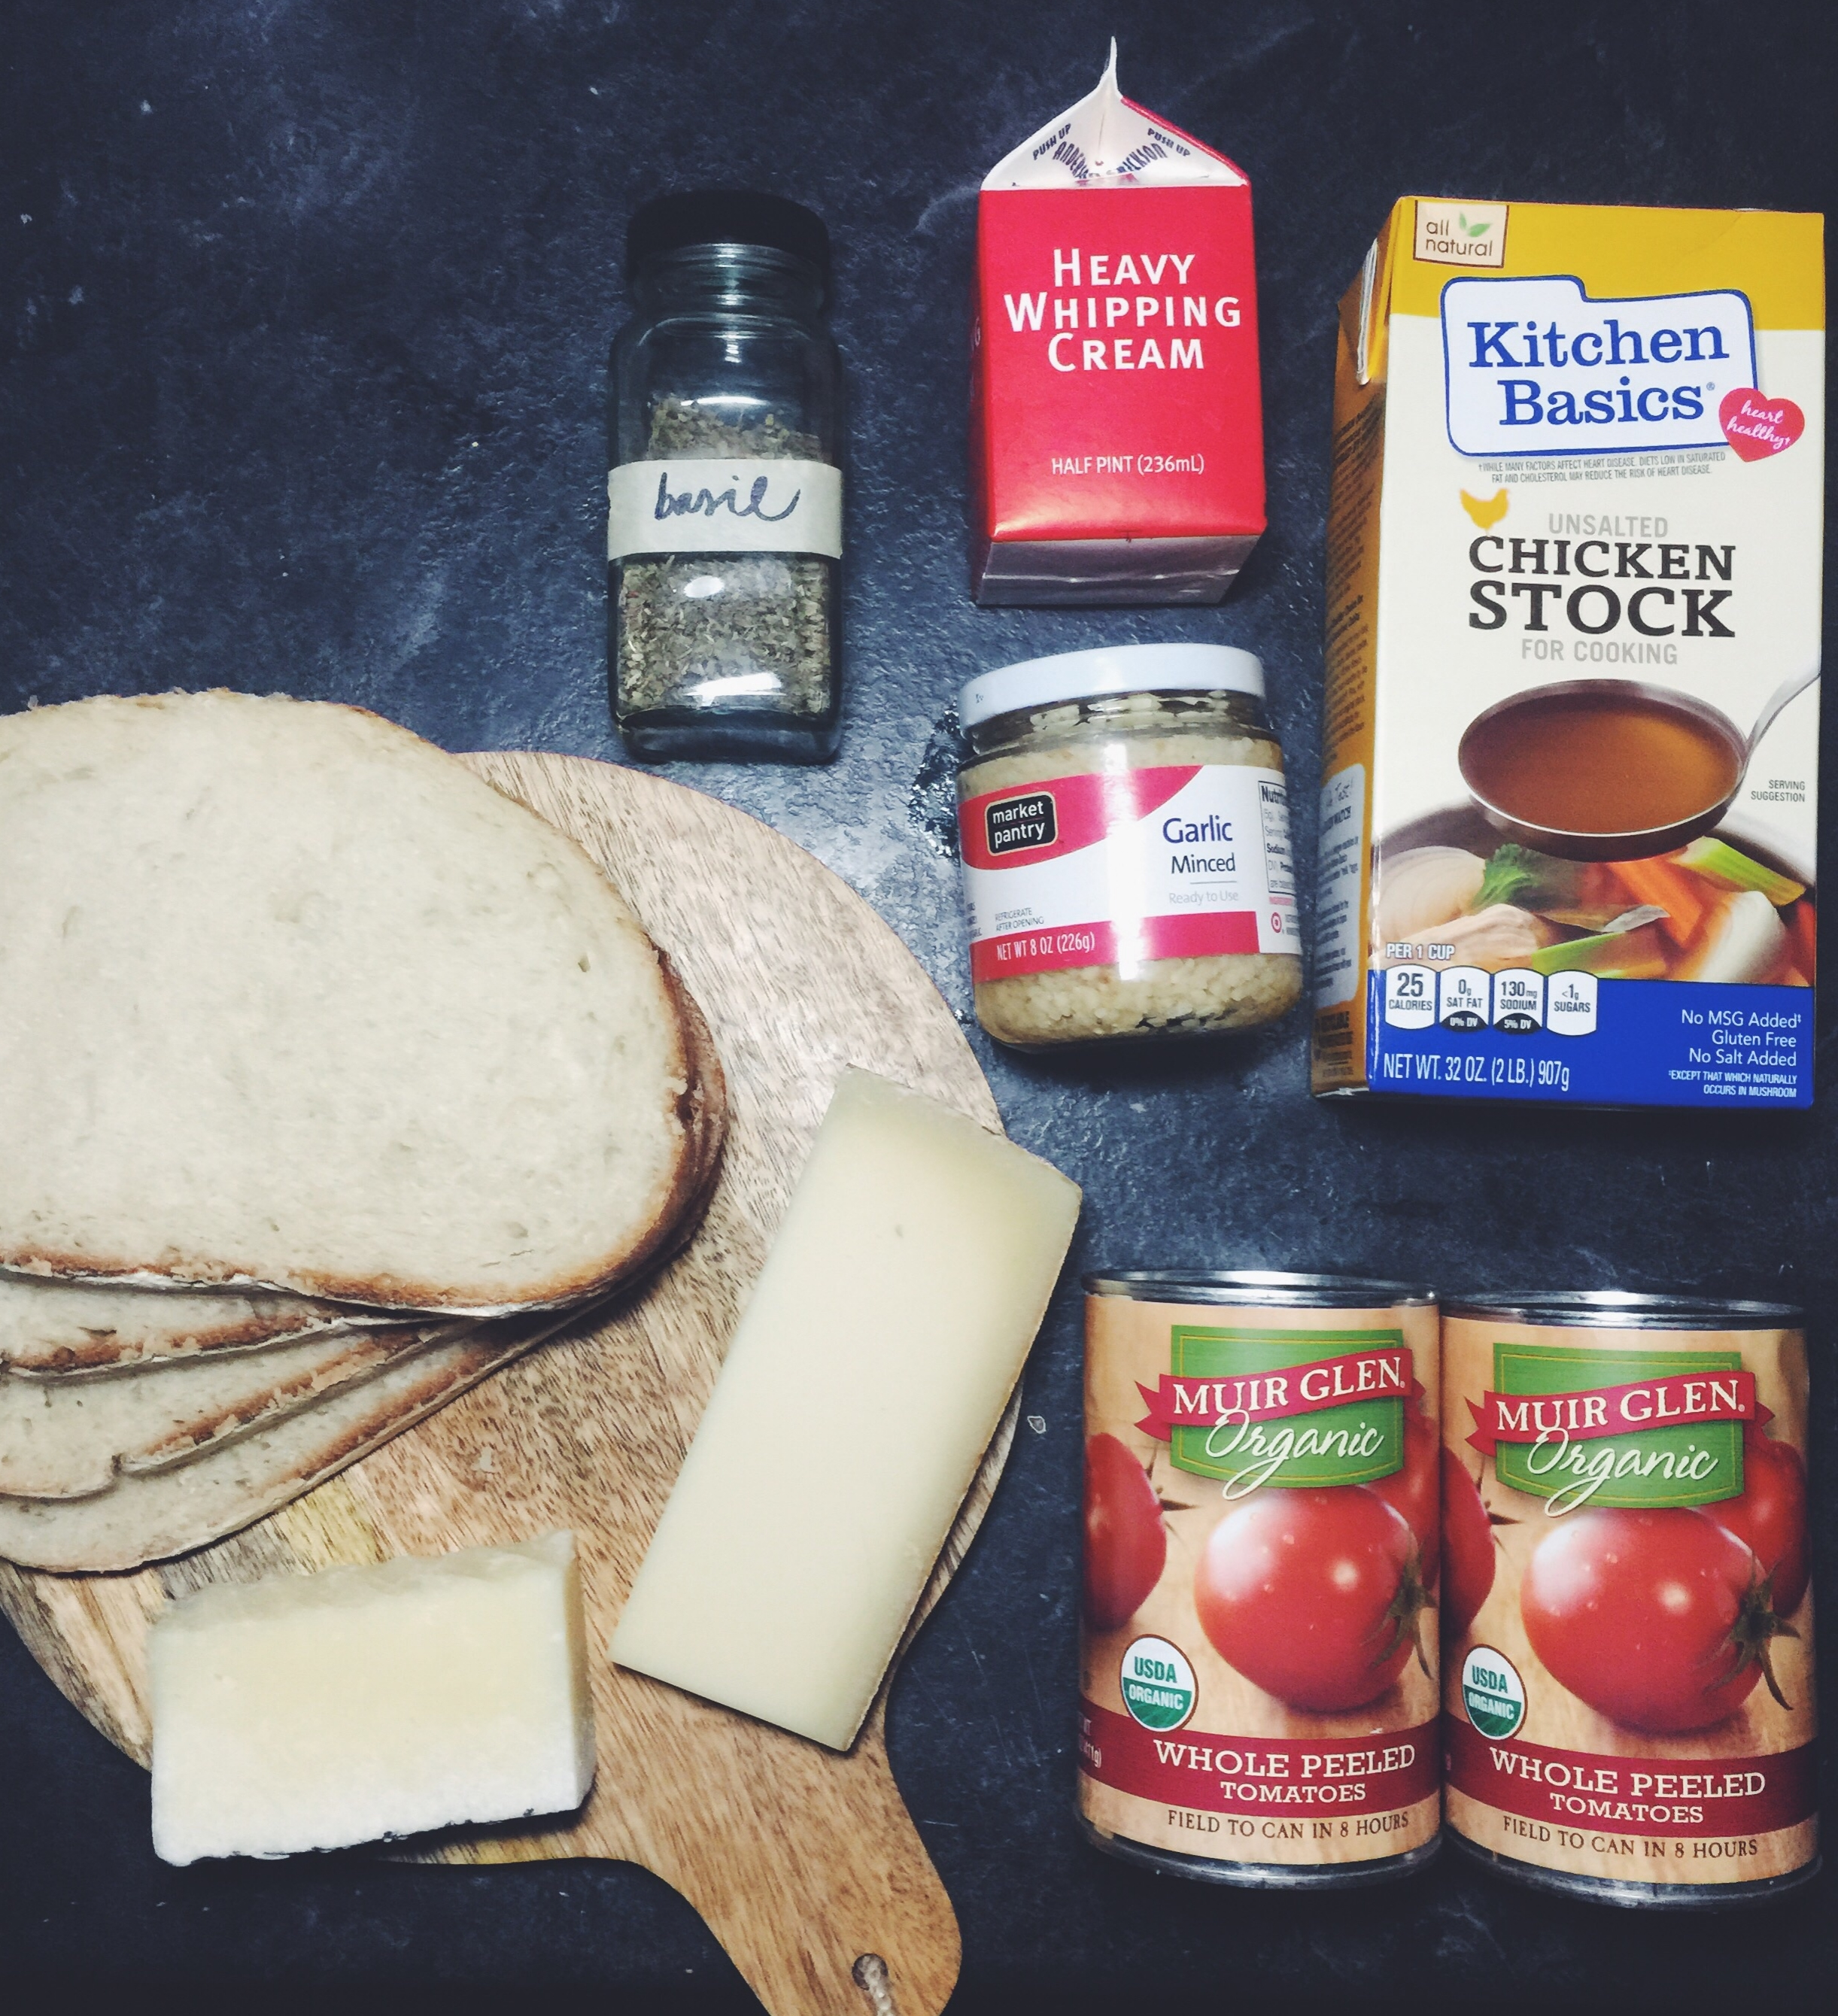 grilled cheese + tomato soup ingredients